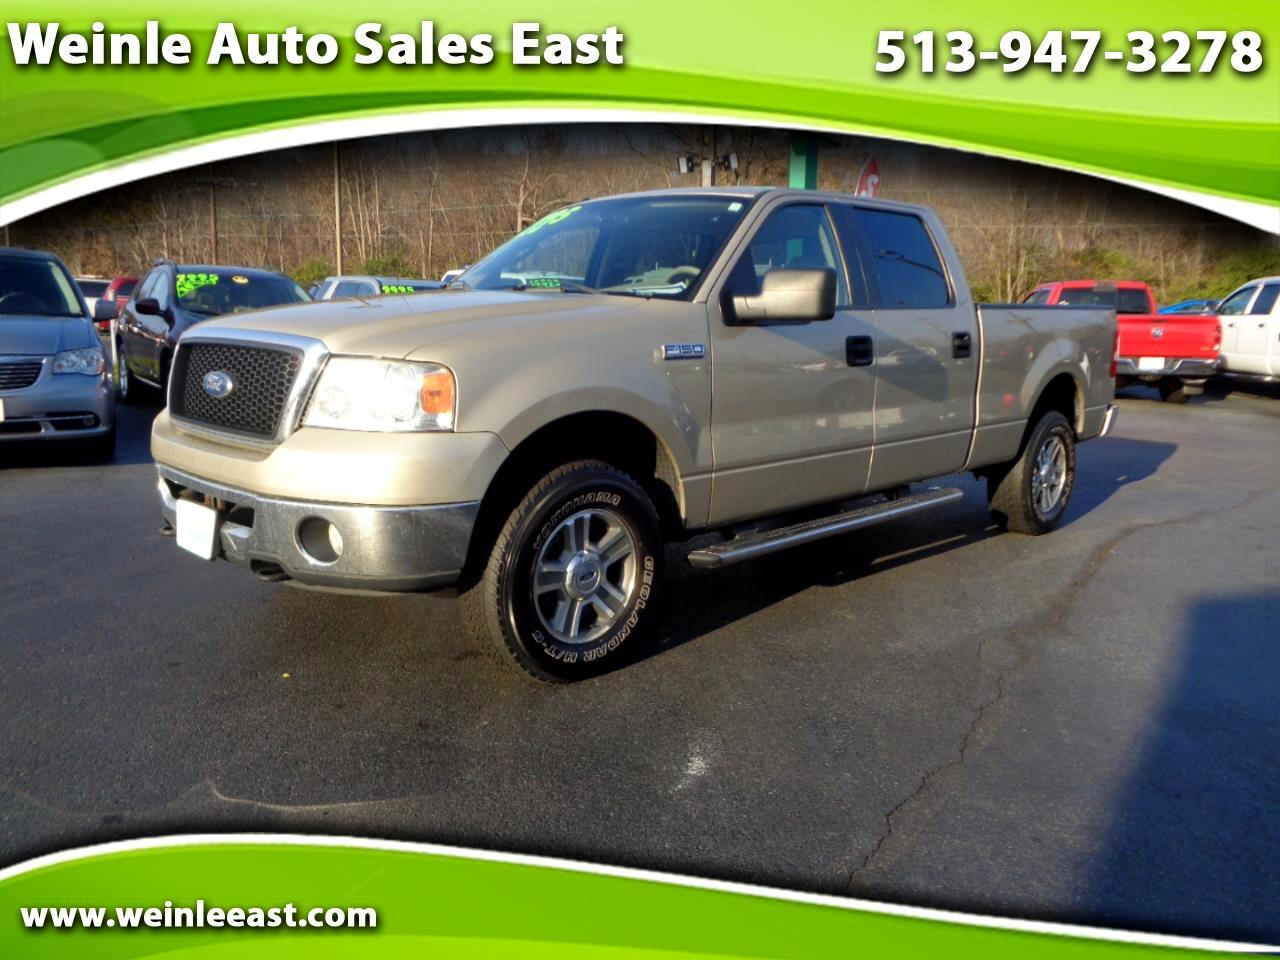 2007 Ford F-150 4WD SUPER CREW XLT LONG BED